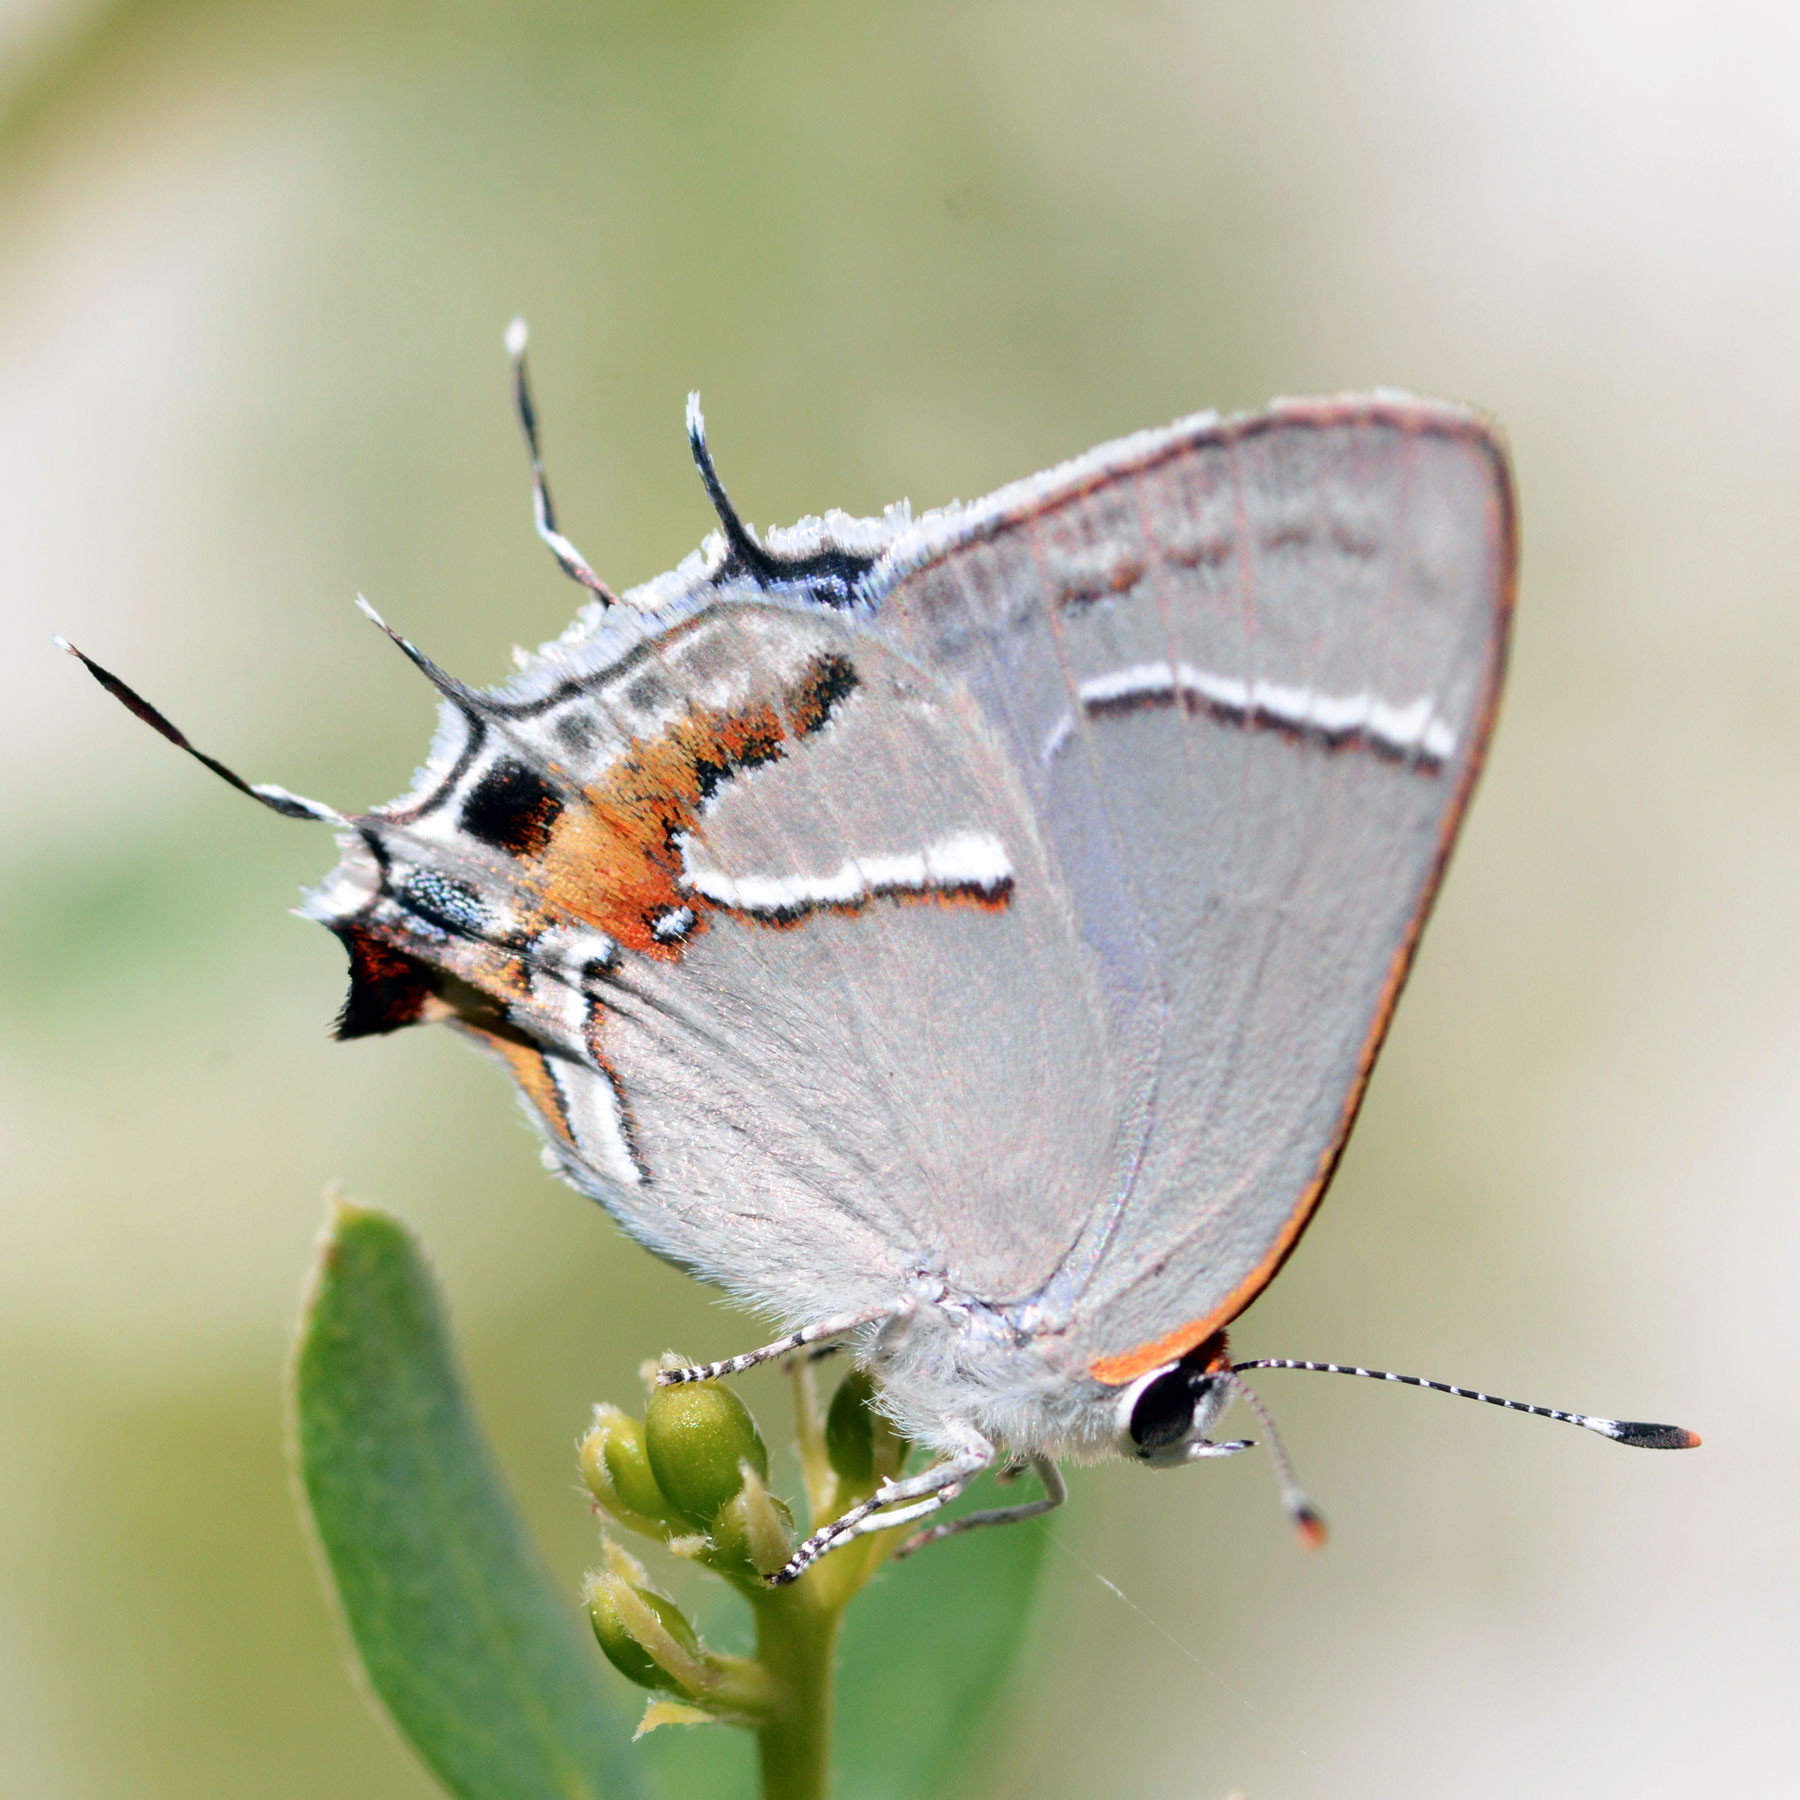 Martial Scrub-Hairstreak (<em>Strymon martialis</em>). Boca Raton, FL, October 17, 2014.